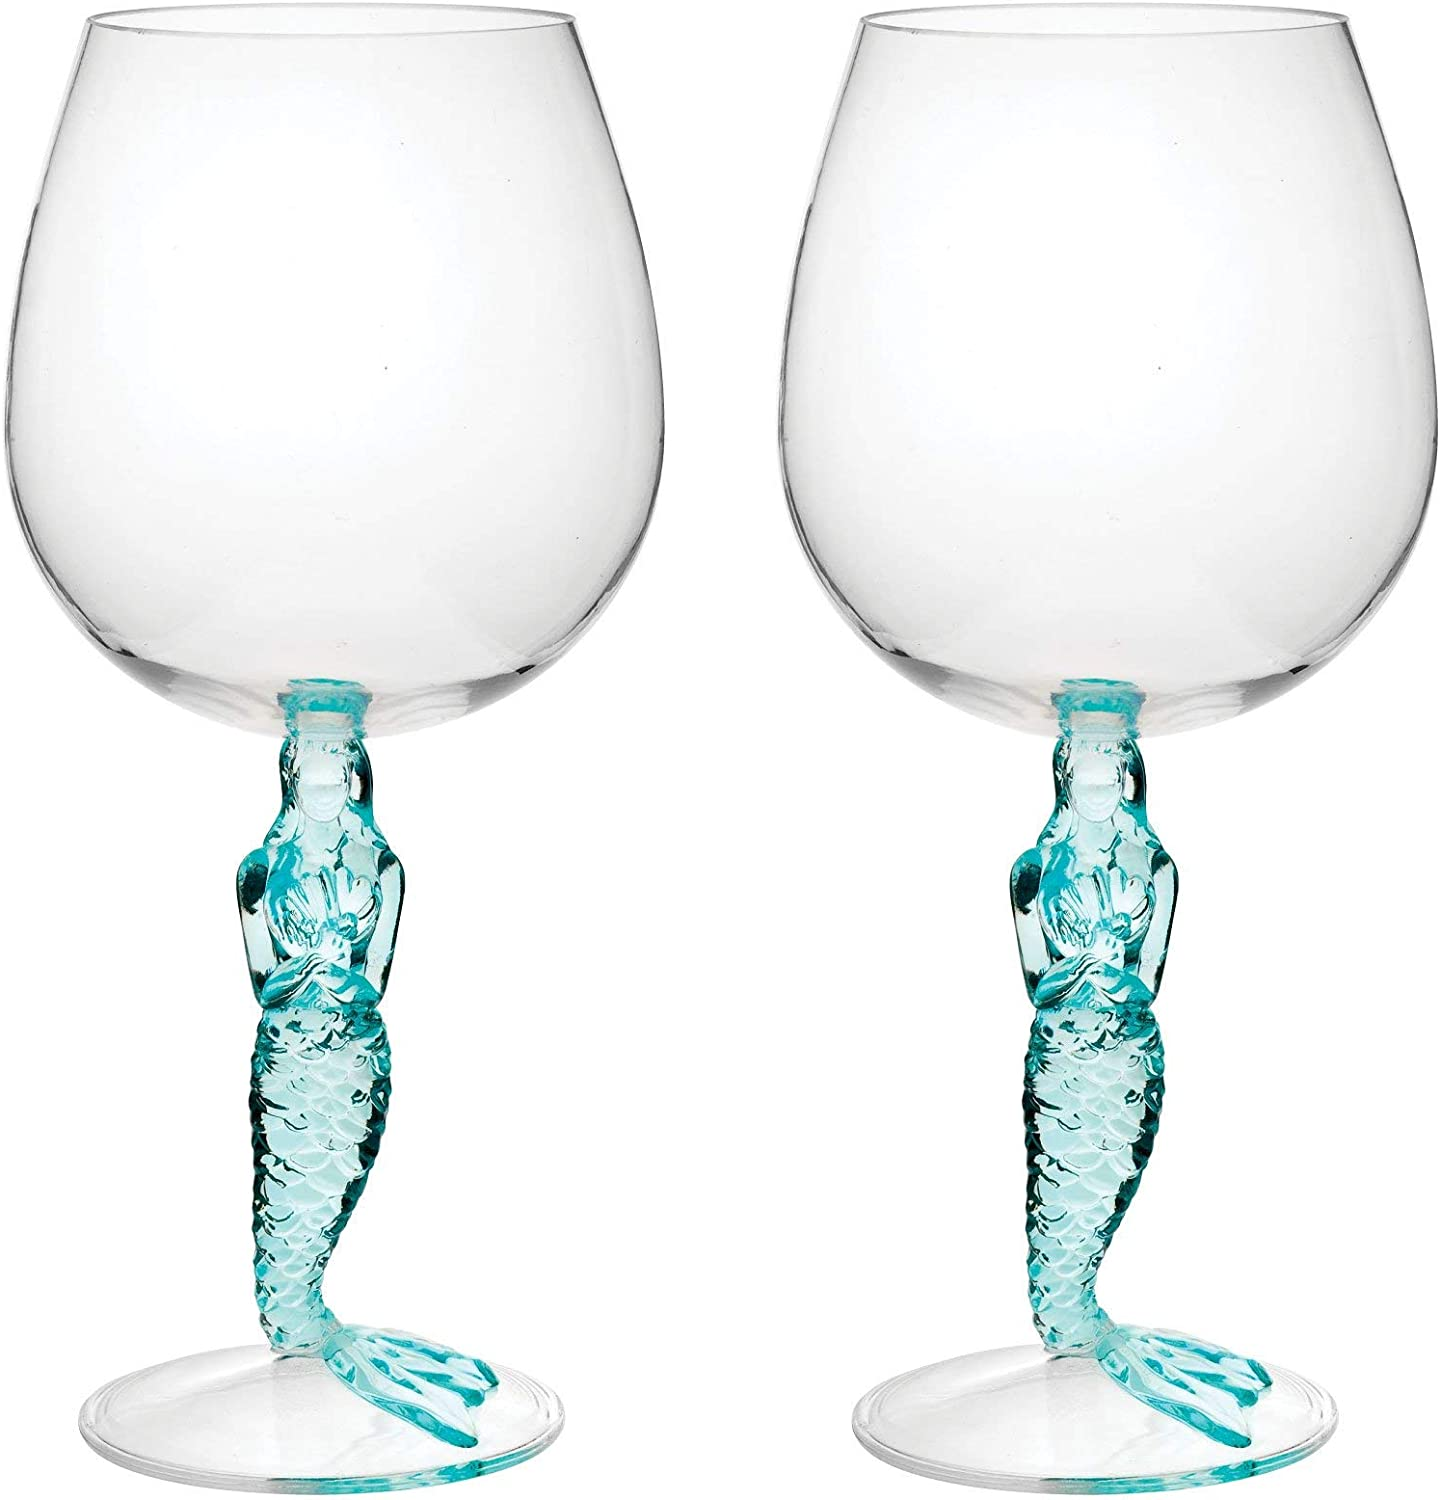 Gourmet Art 2-Piece Mermaid 17 oz. Durable Acrylic Plastic Wine Glass, Ideal for Wine and Beverage